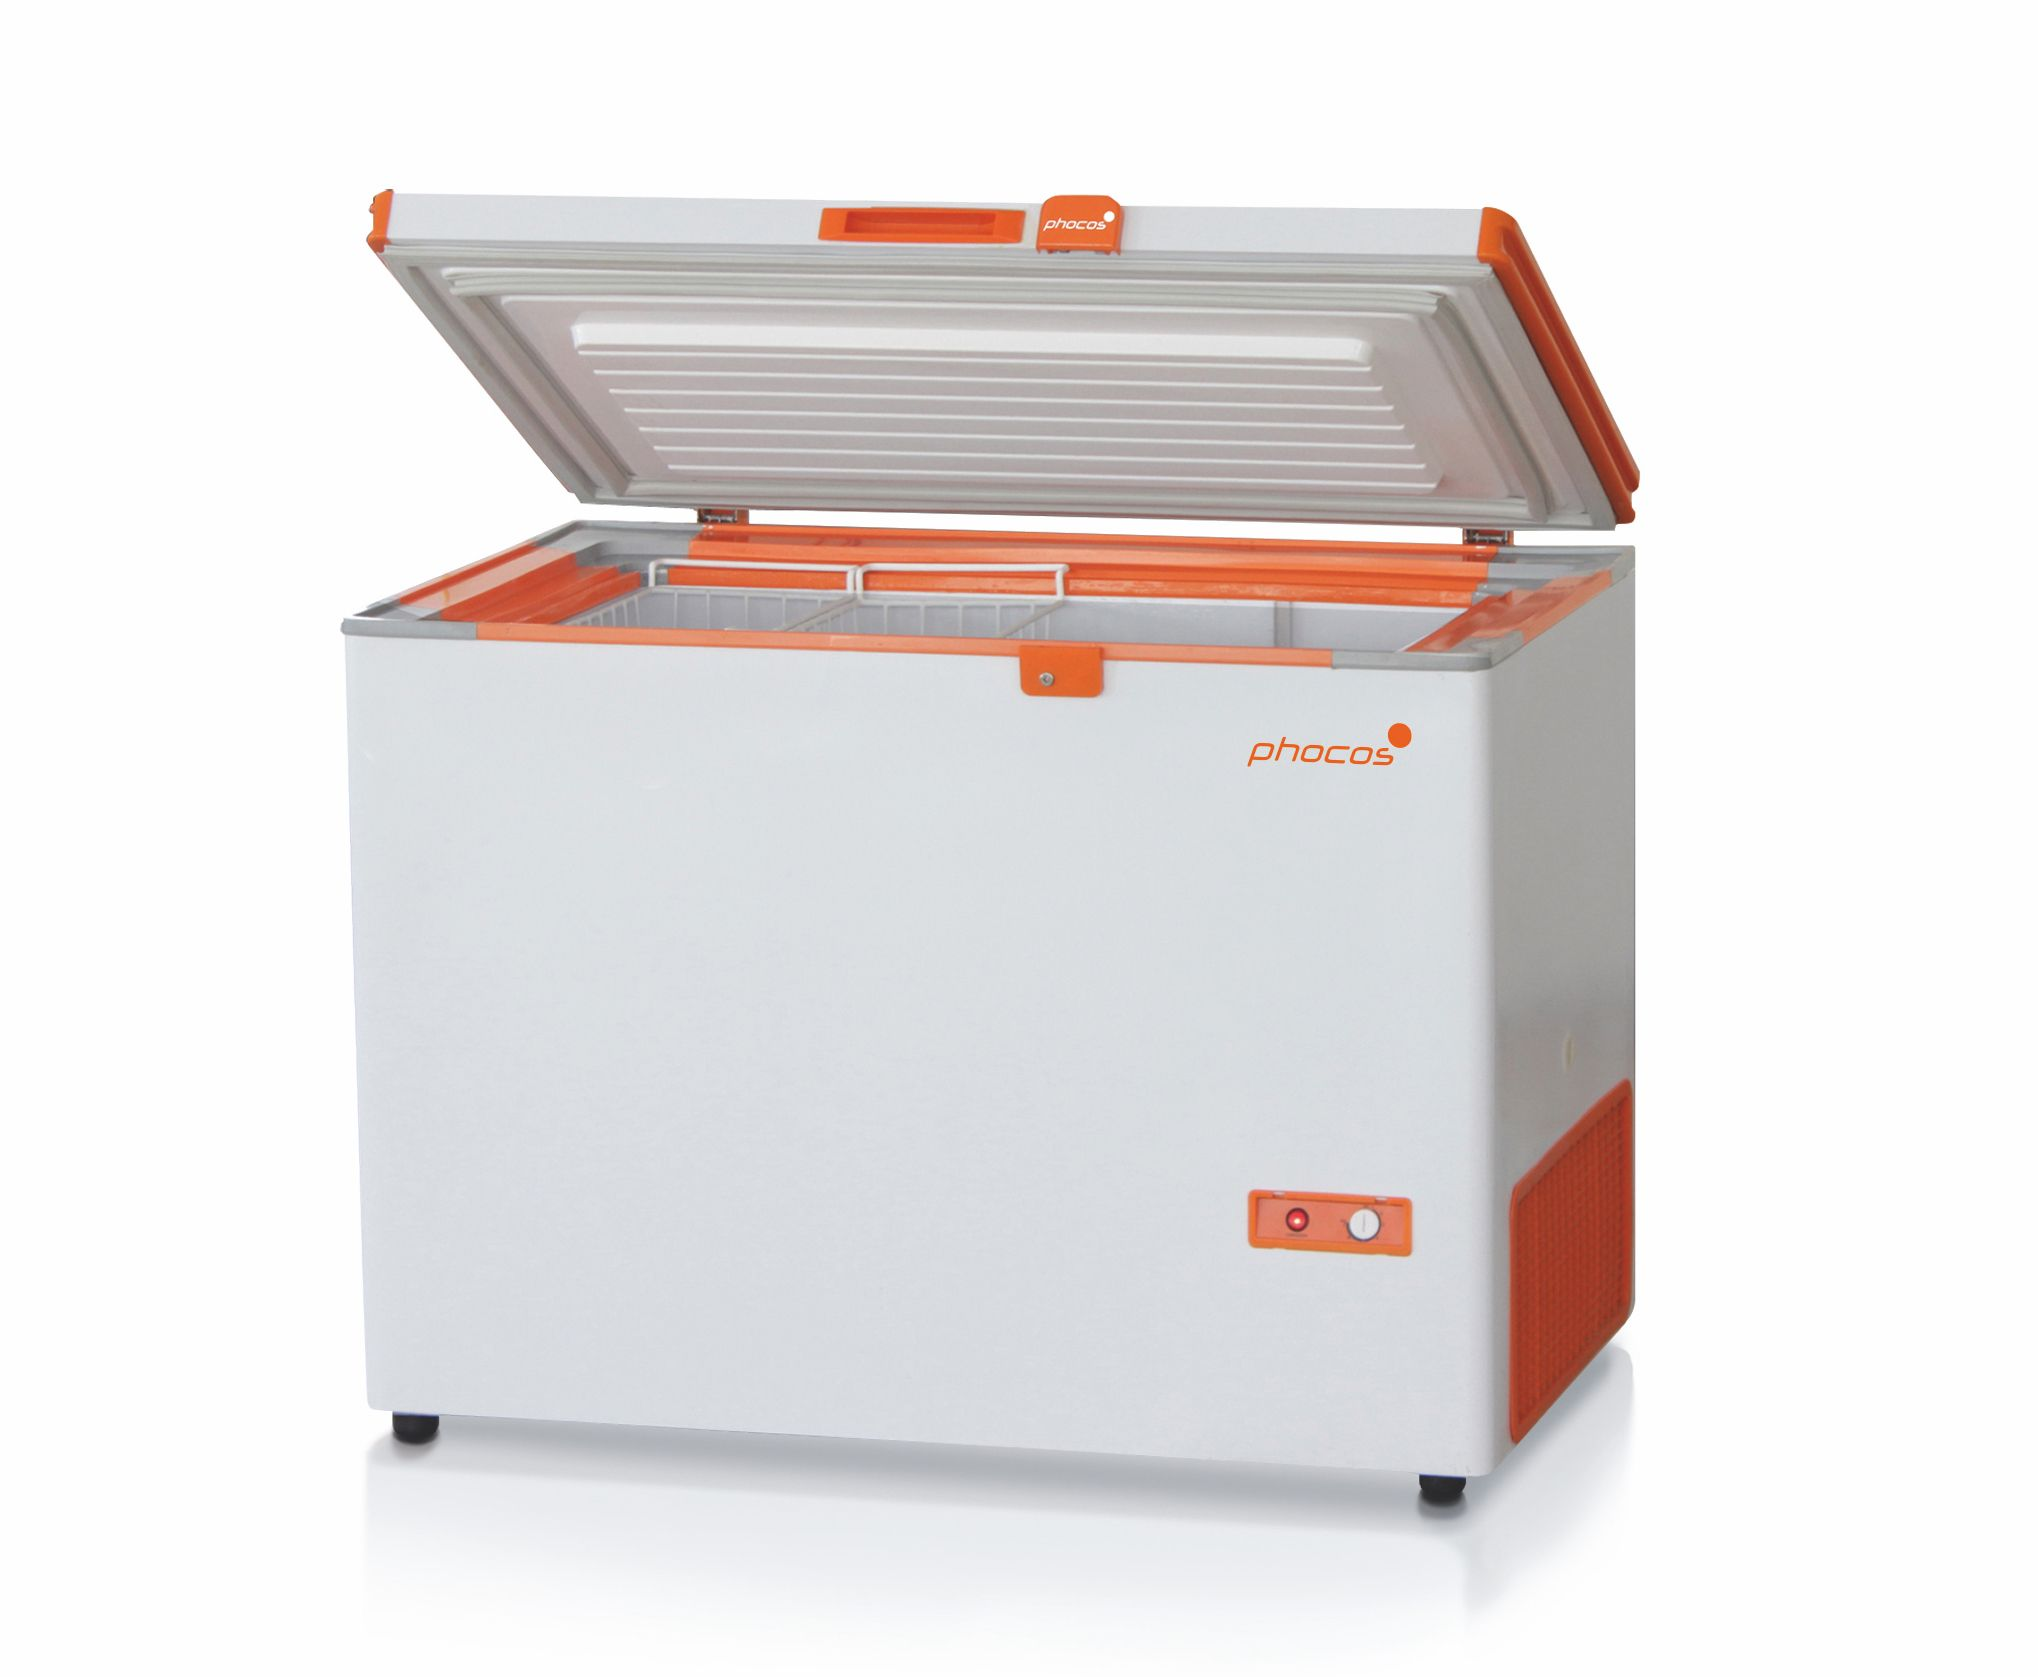 DC Refrigerator/Freezer for off-grid homes, cabins and